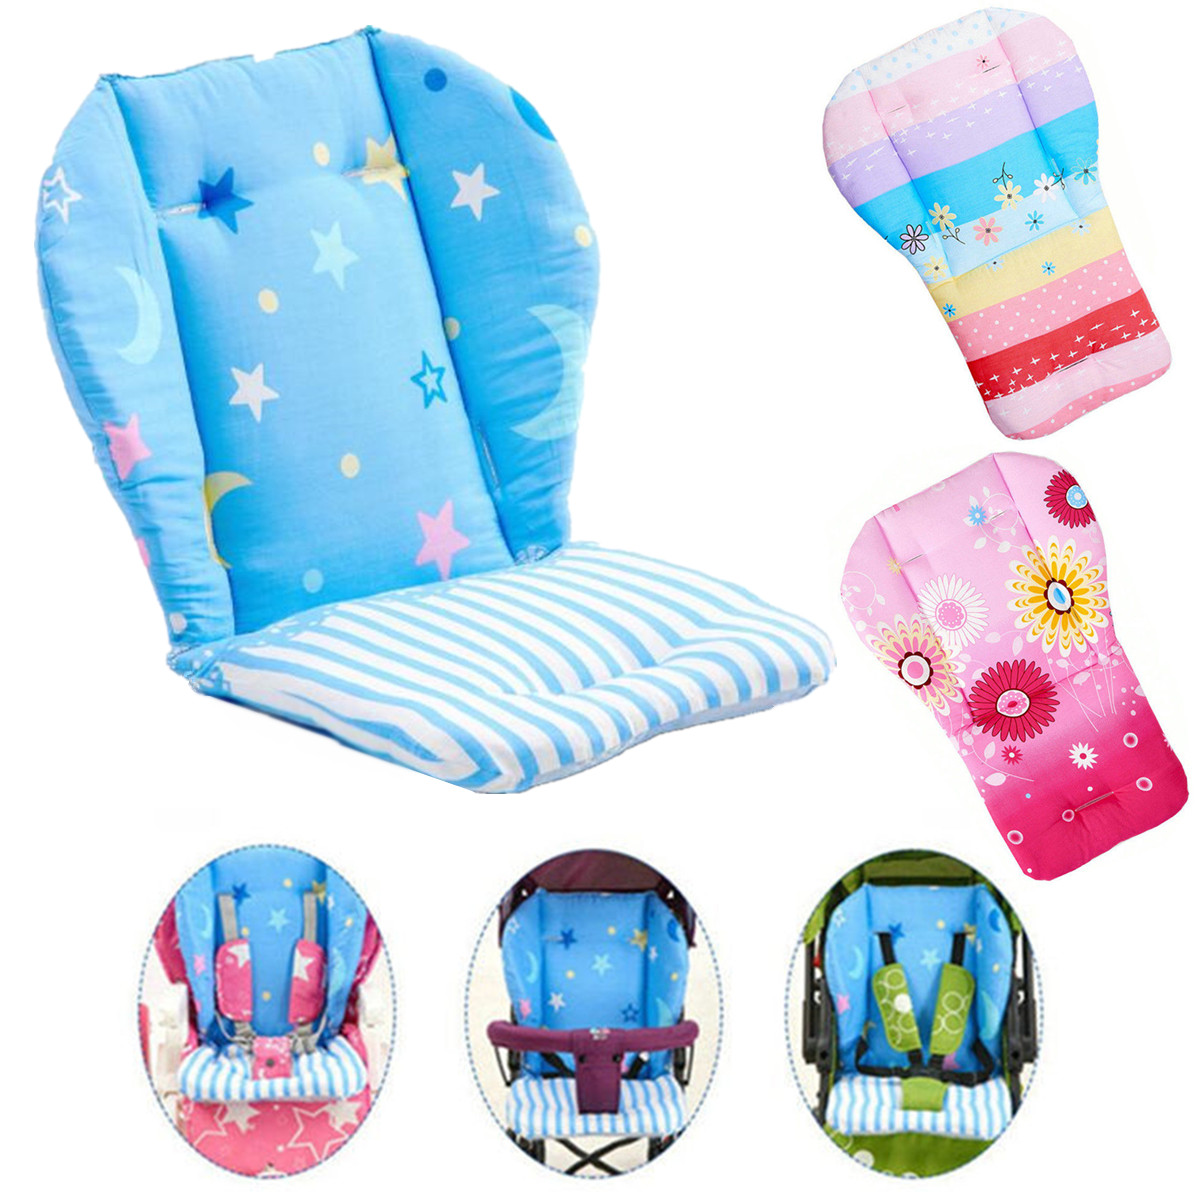 Baby High Chair Cushion Cover Kids Children  Booster Mats Pads Feeding Chair Cushion Stroller Seat Cushion Pure Cotton Fabrics(China)